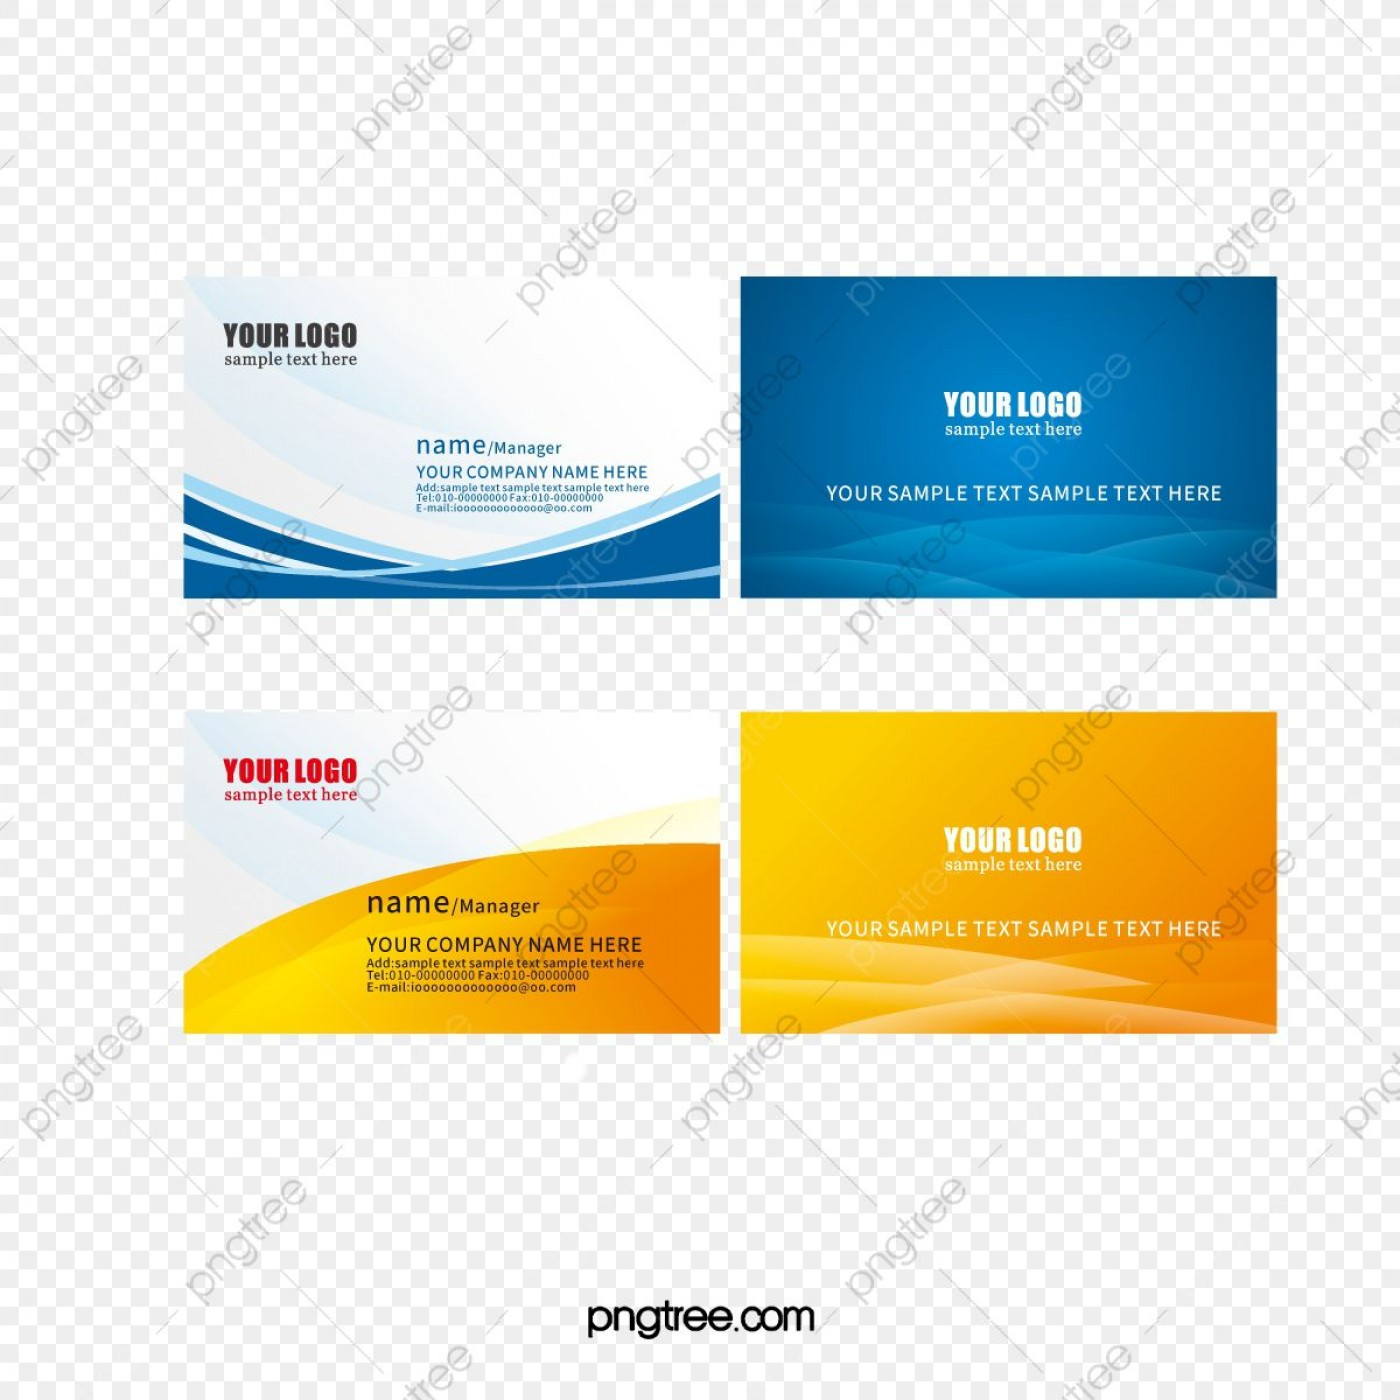 008 Best Download Busines Card Template Highest Clarity  For Microsoft Publisher Adobe Illustrator Visiting Psd1400